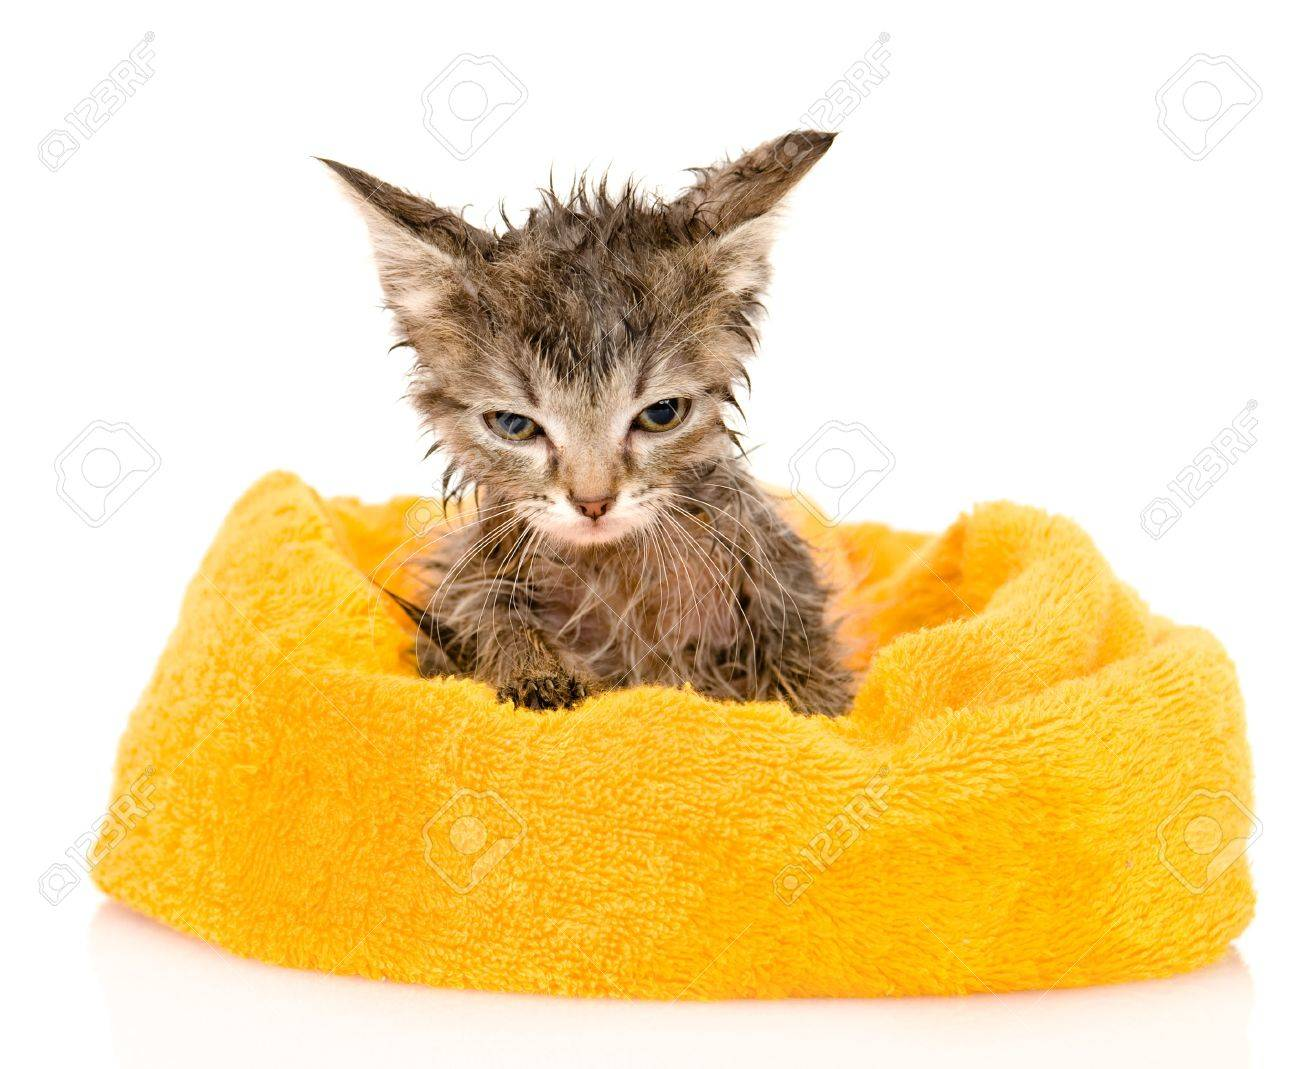 Cute soggy kitten after a bath  isolated on white background Stock Photo - 21759140